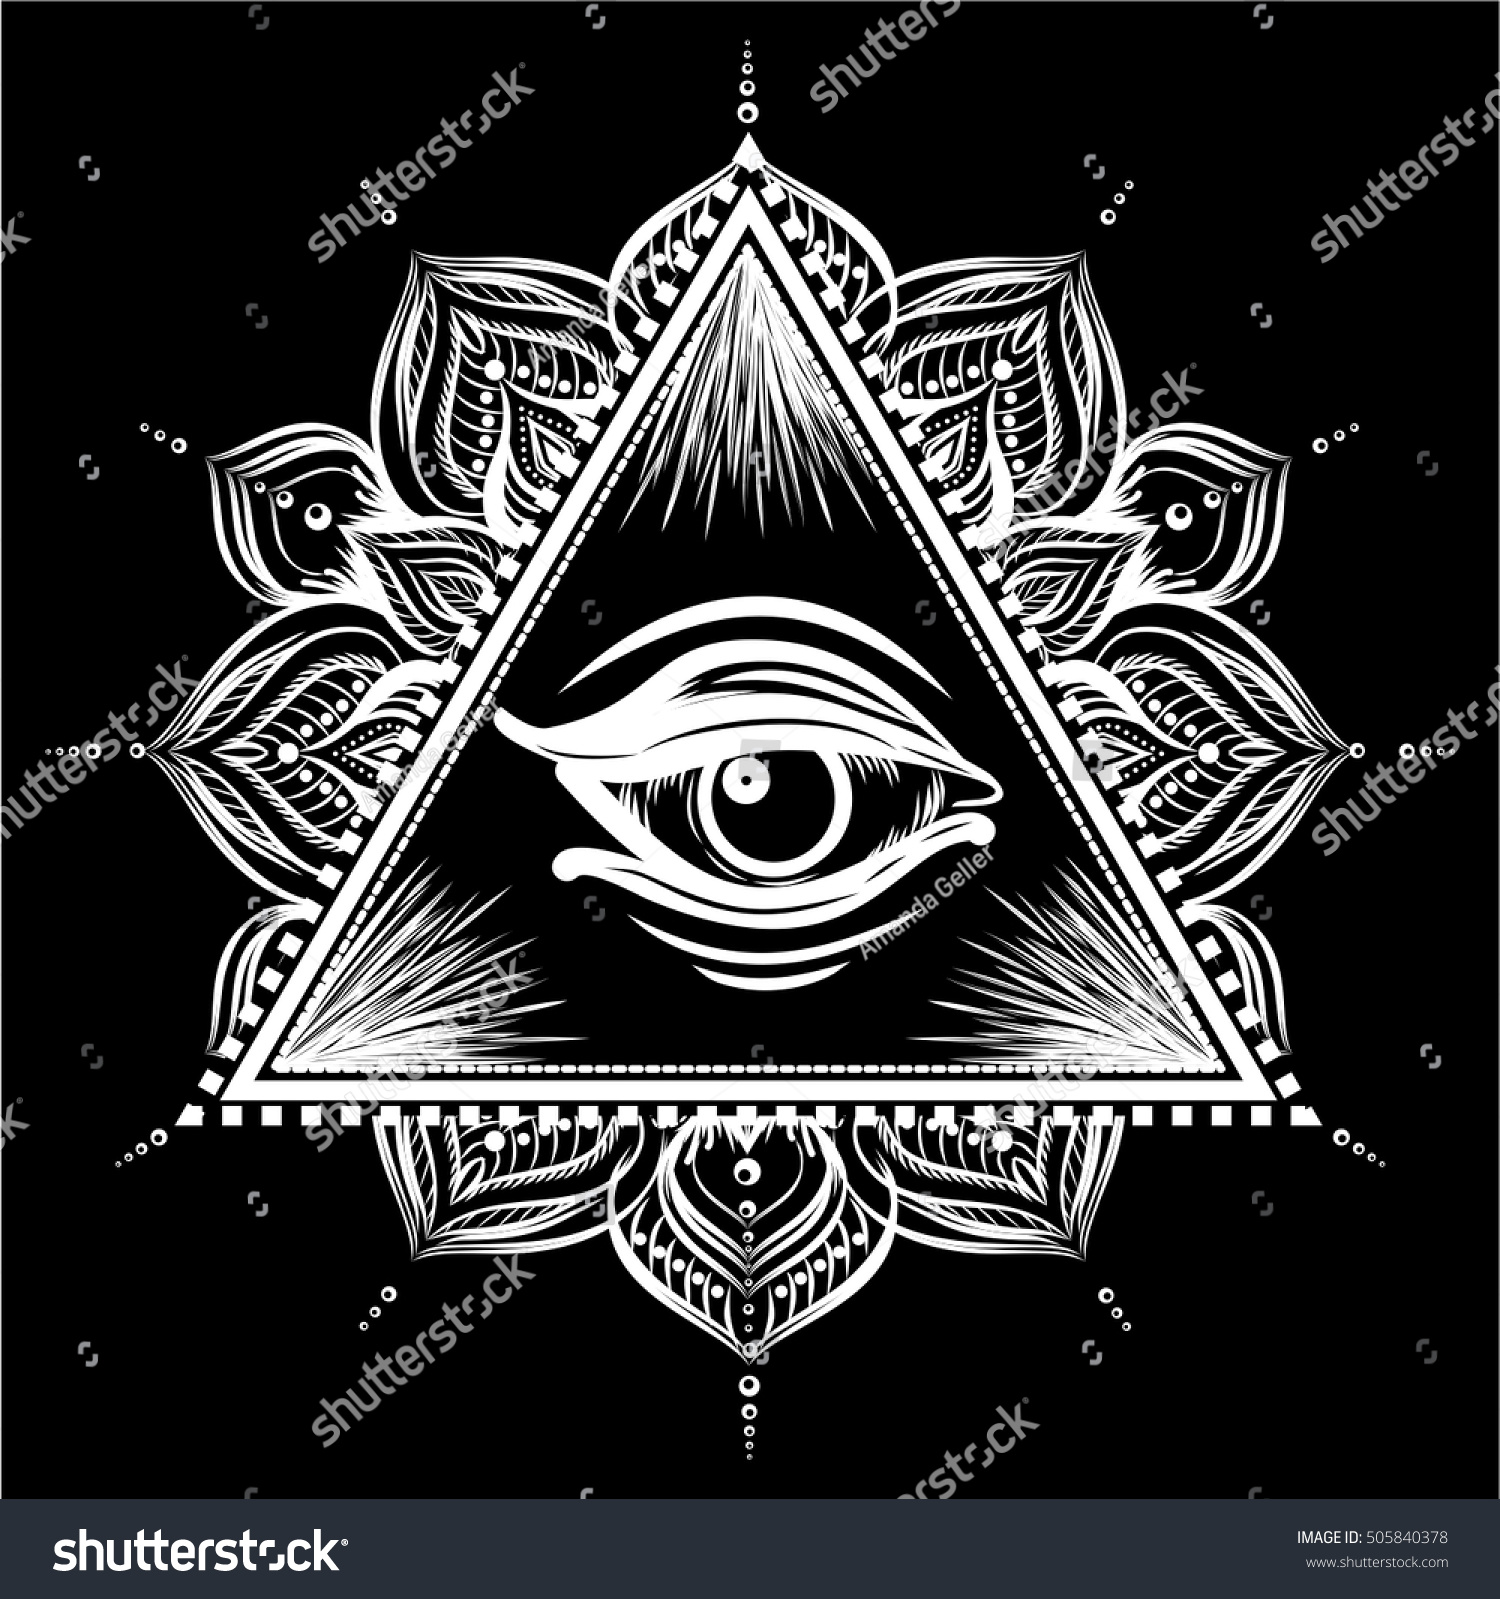 All Seeing Eye Pyramid Symbol Floral Stock Vector Royalty Free